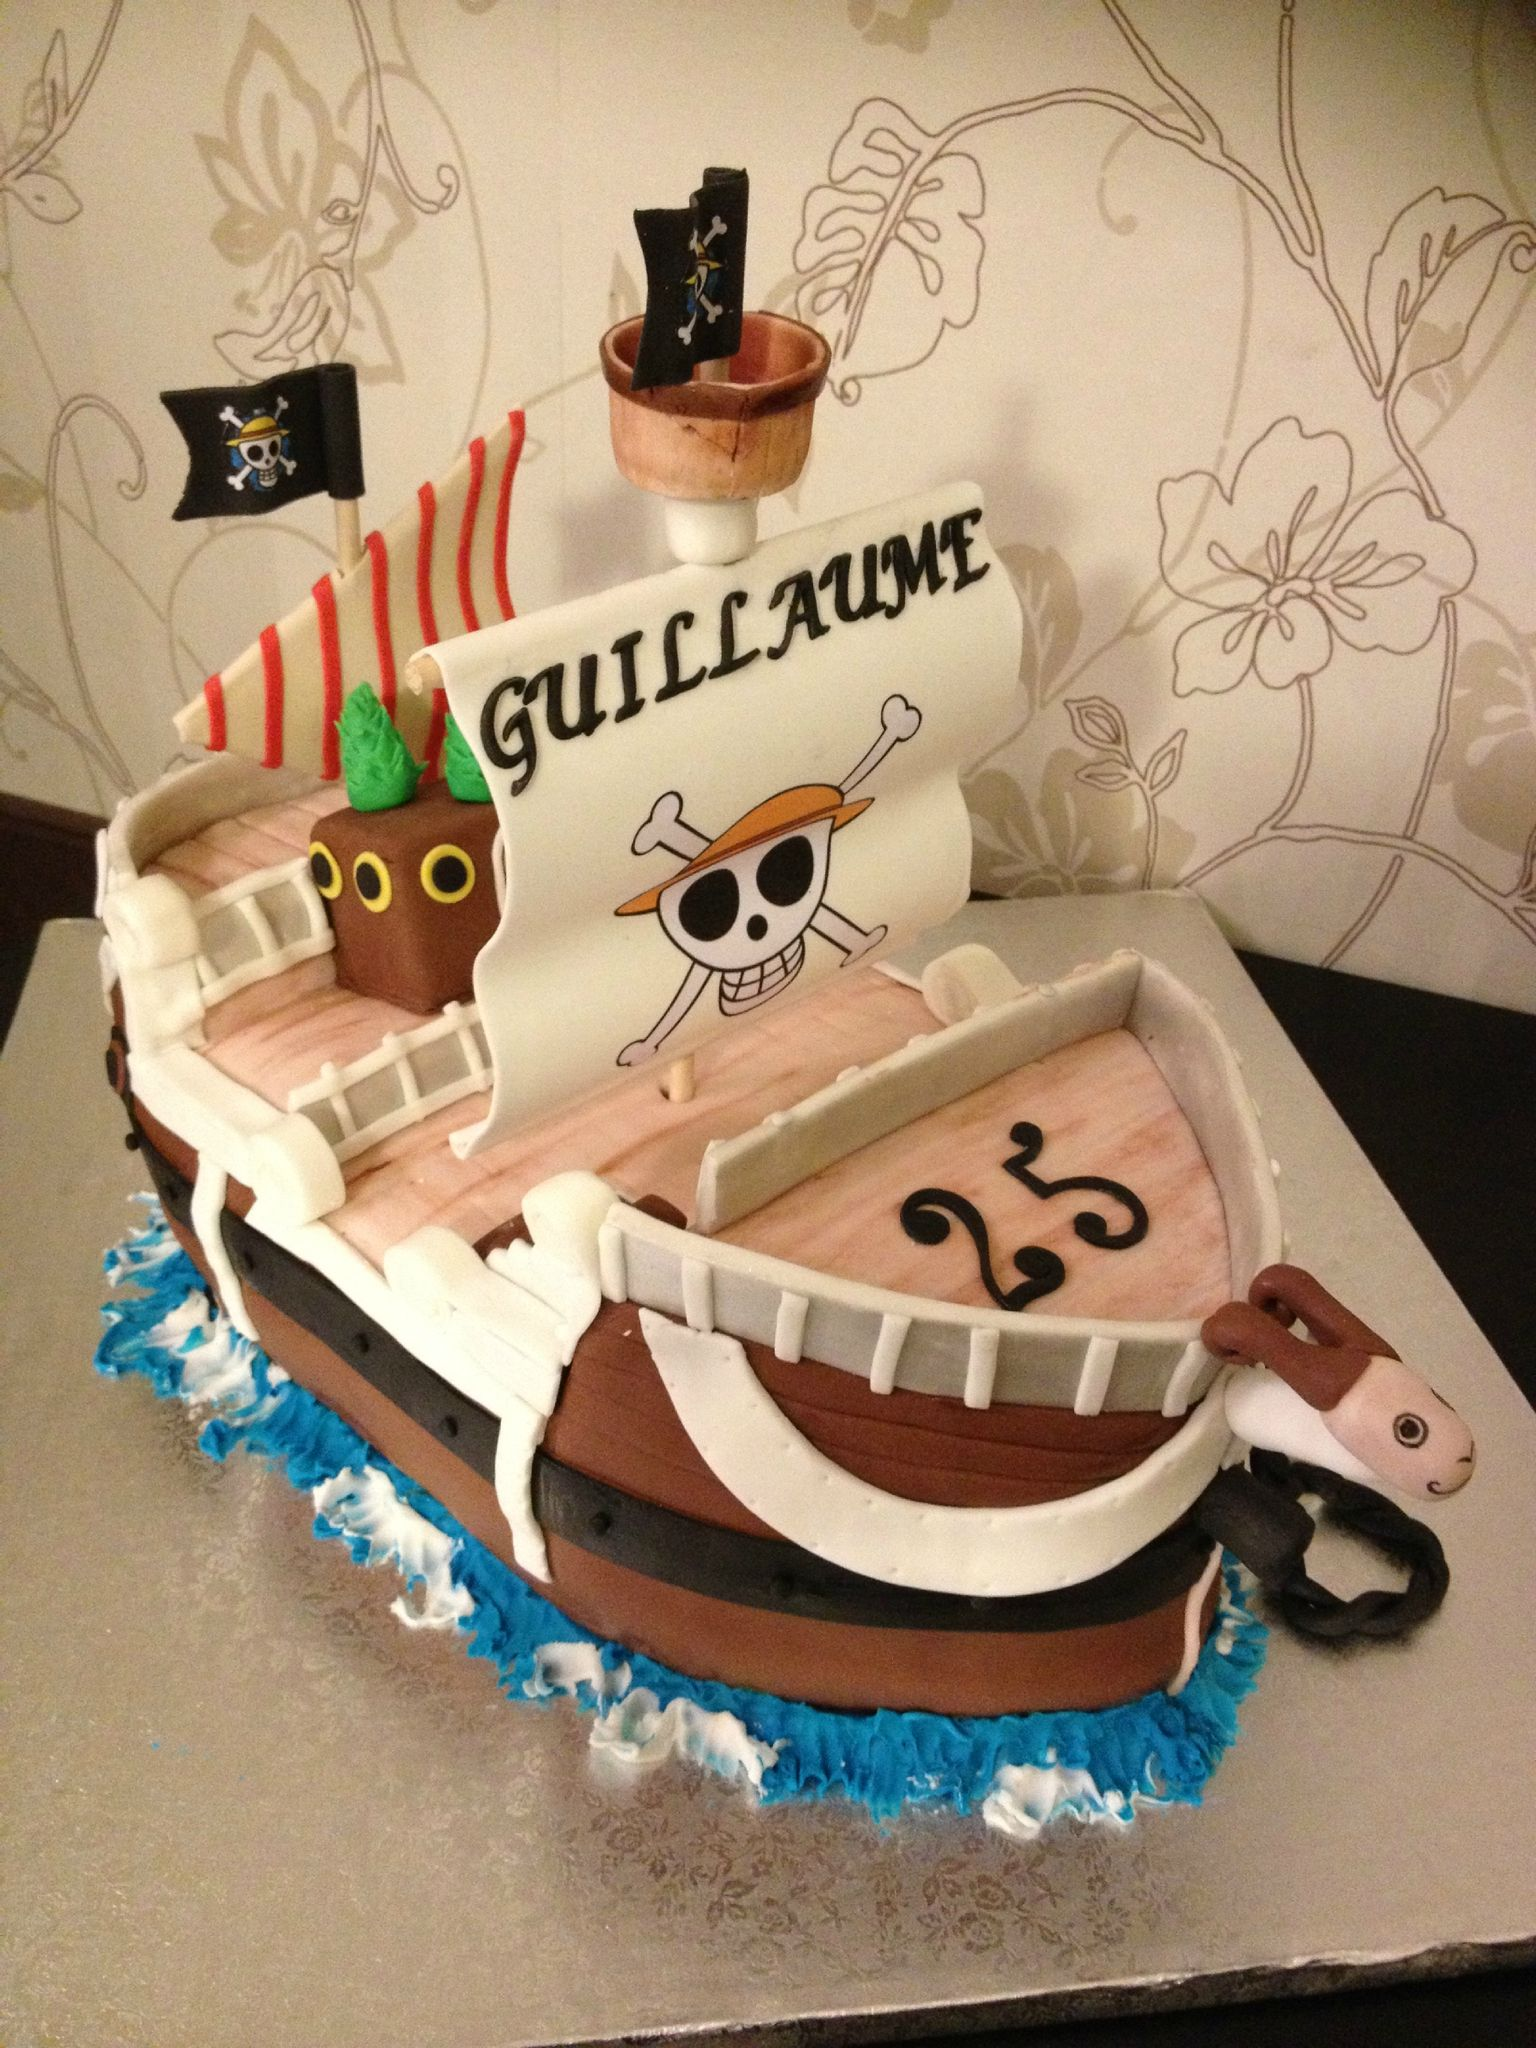 Top Gâteau de mariage One Piece | Cake, Cake designs and Food art XL87